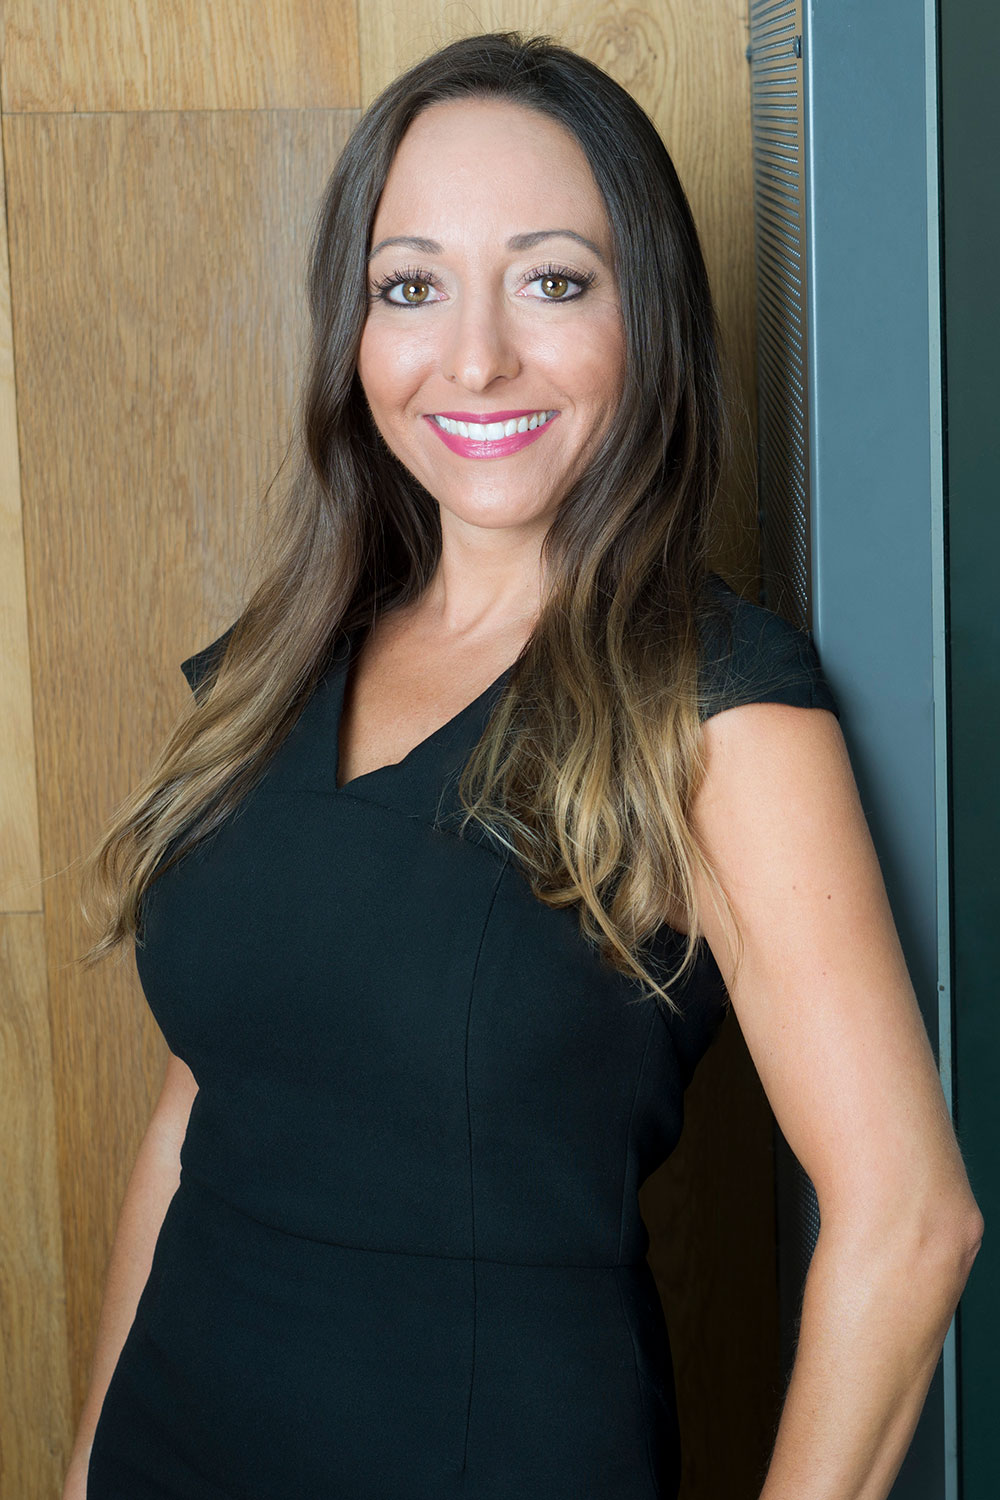 Tanya Annarilli Injury Lawyer